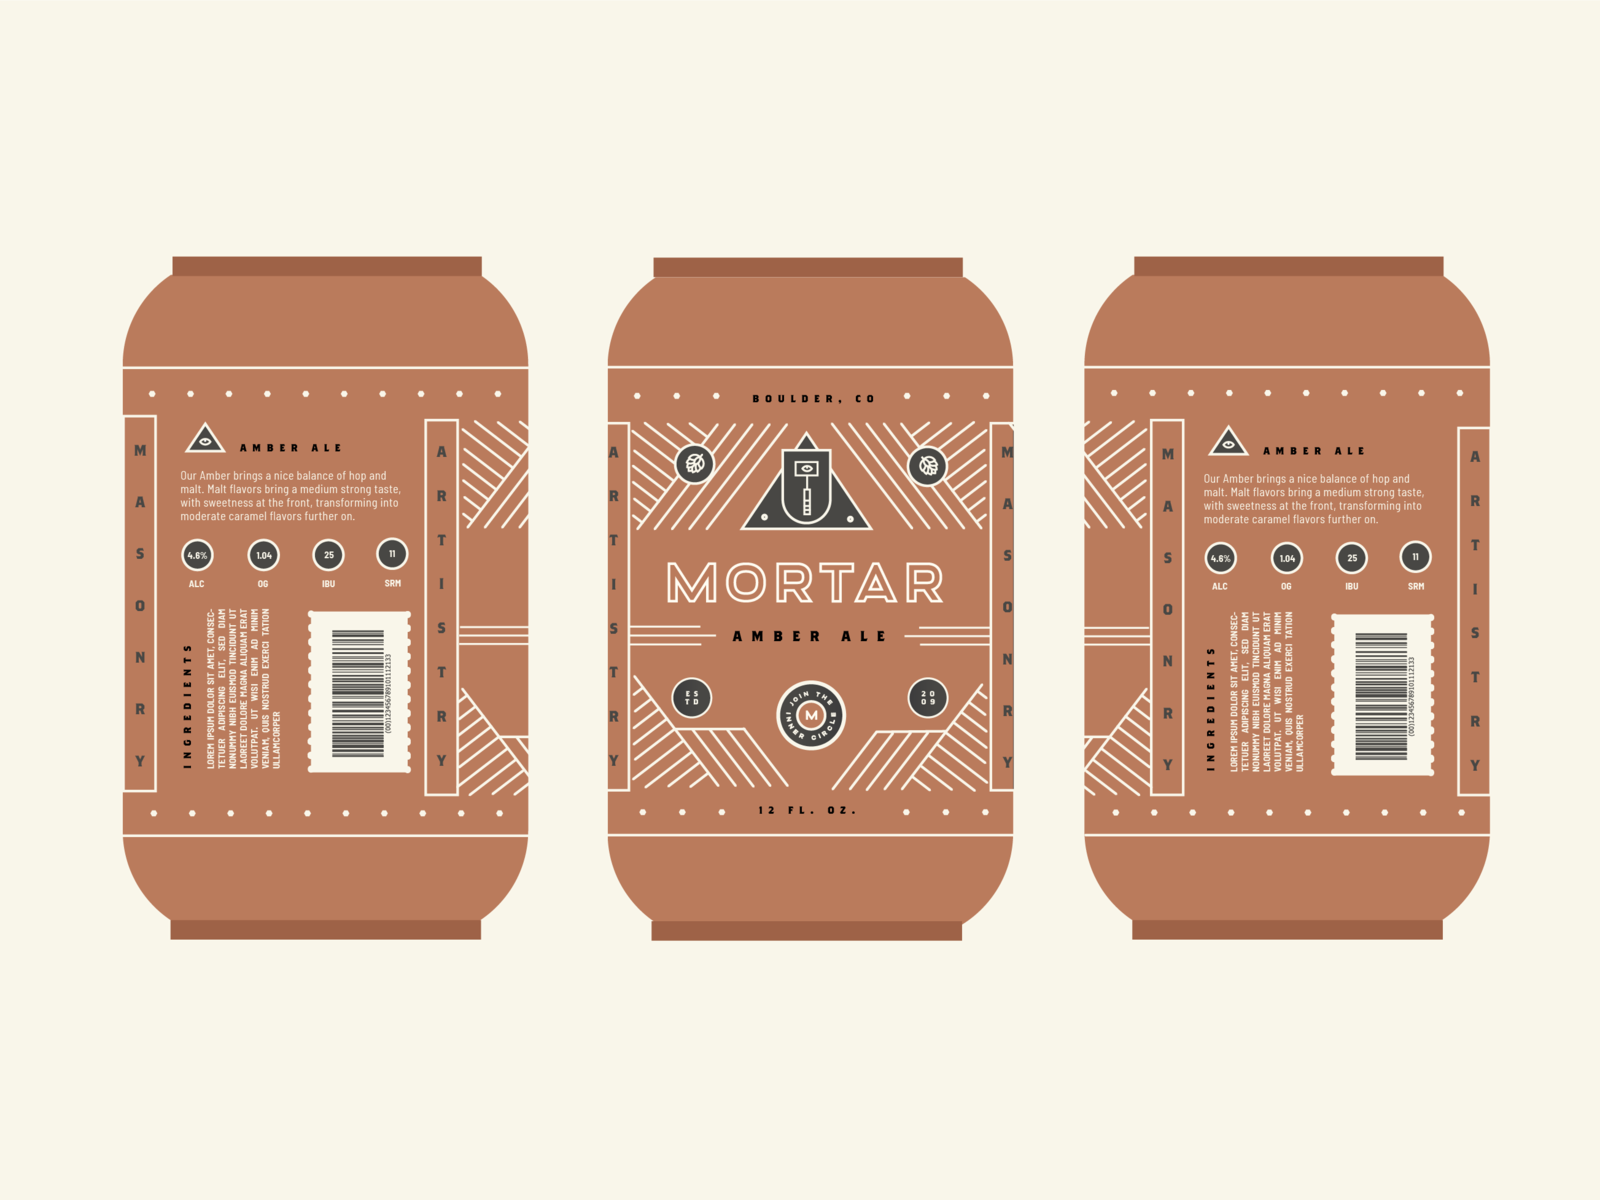 Mortar Cans Study 02 masonry package beer hammer eye pattern pyramid geometric graphic design typography logo illustration